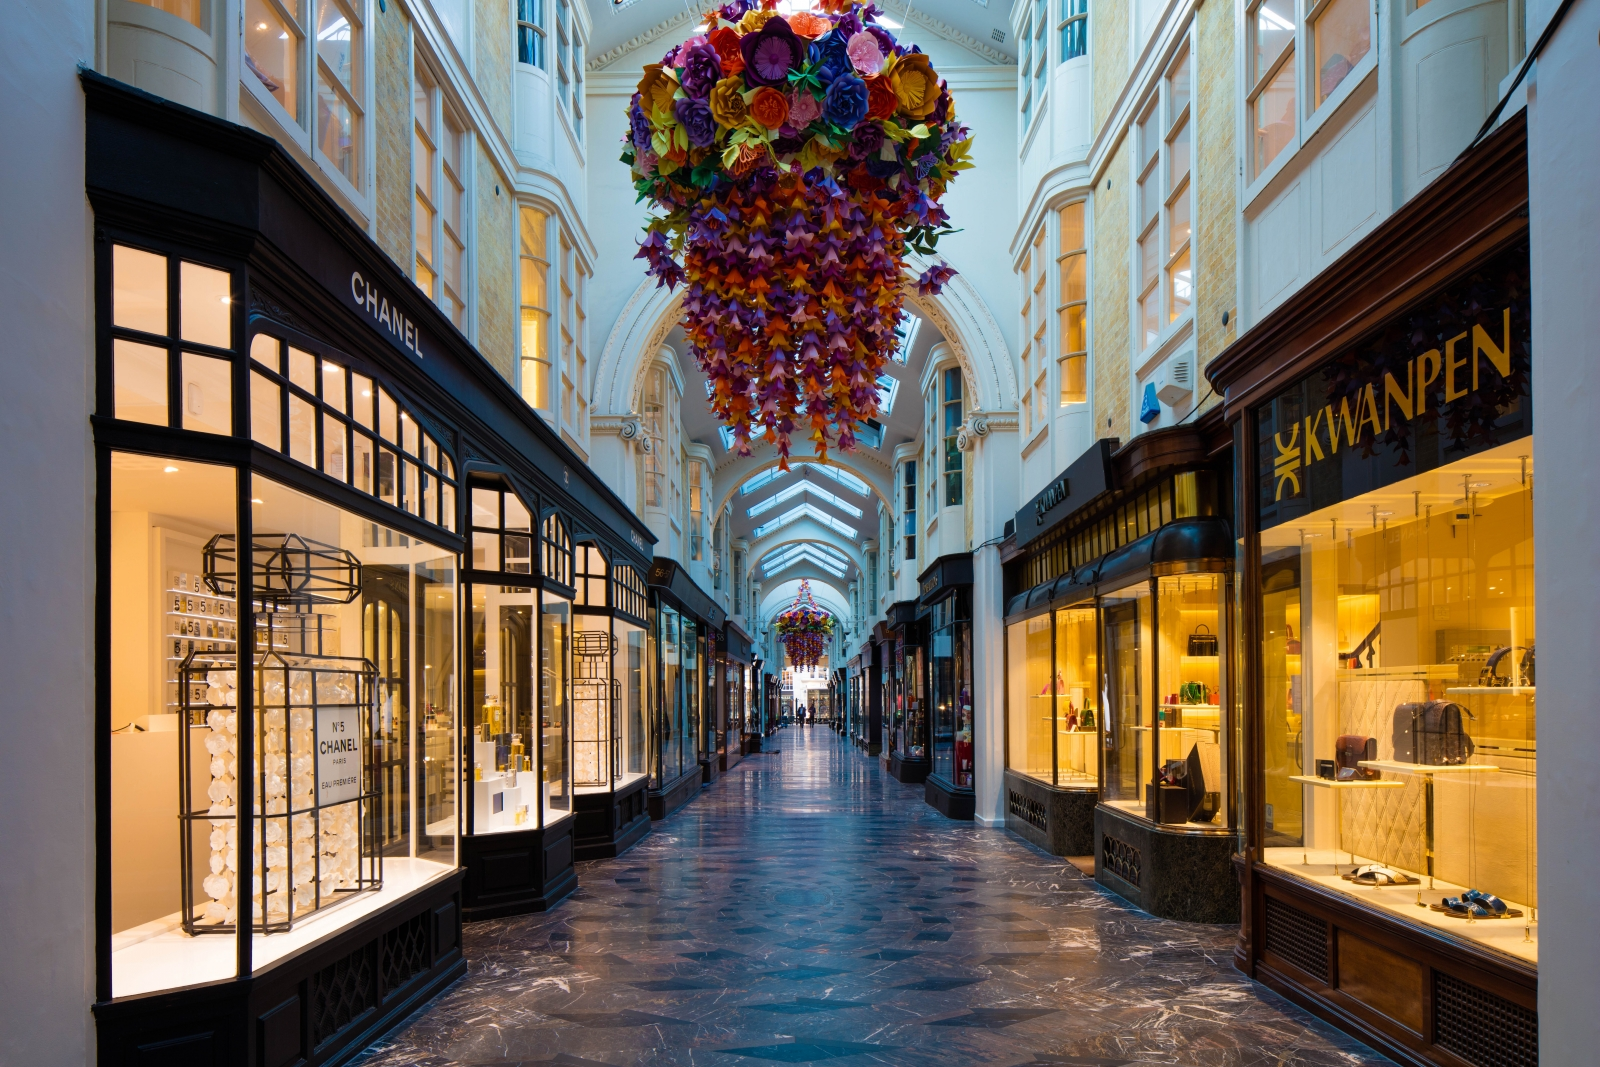 Burlington Arcade in London goes up for sale